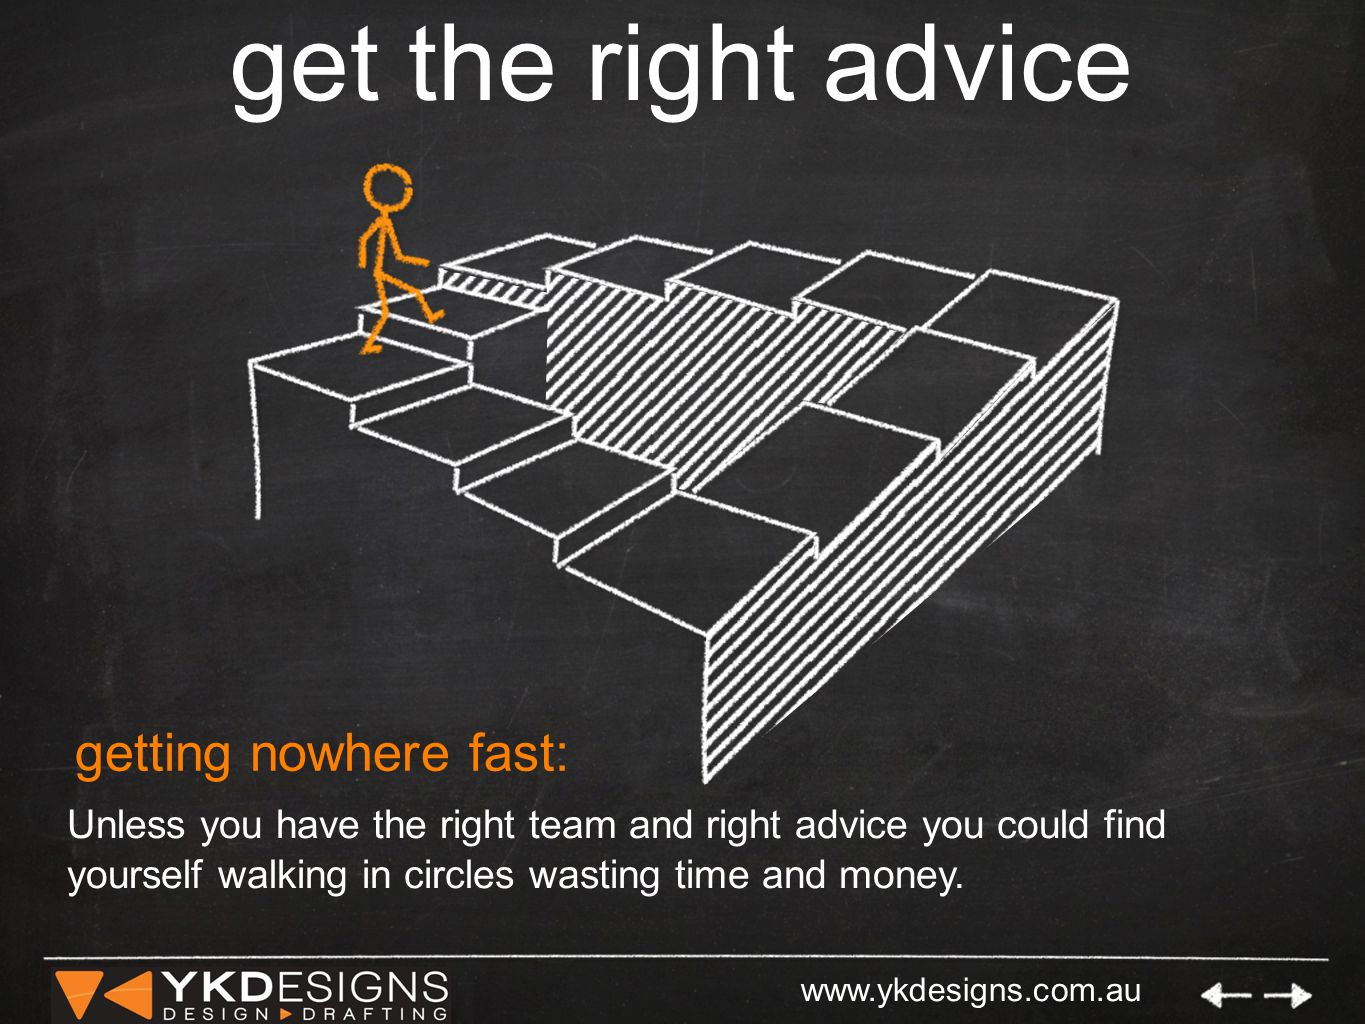 www.ykdesigns.com.au get the right advice getting nowhere fast: Unless you have the right team and right advice you could find yourself walking in circles wasting time and money.